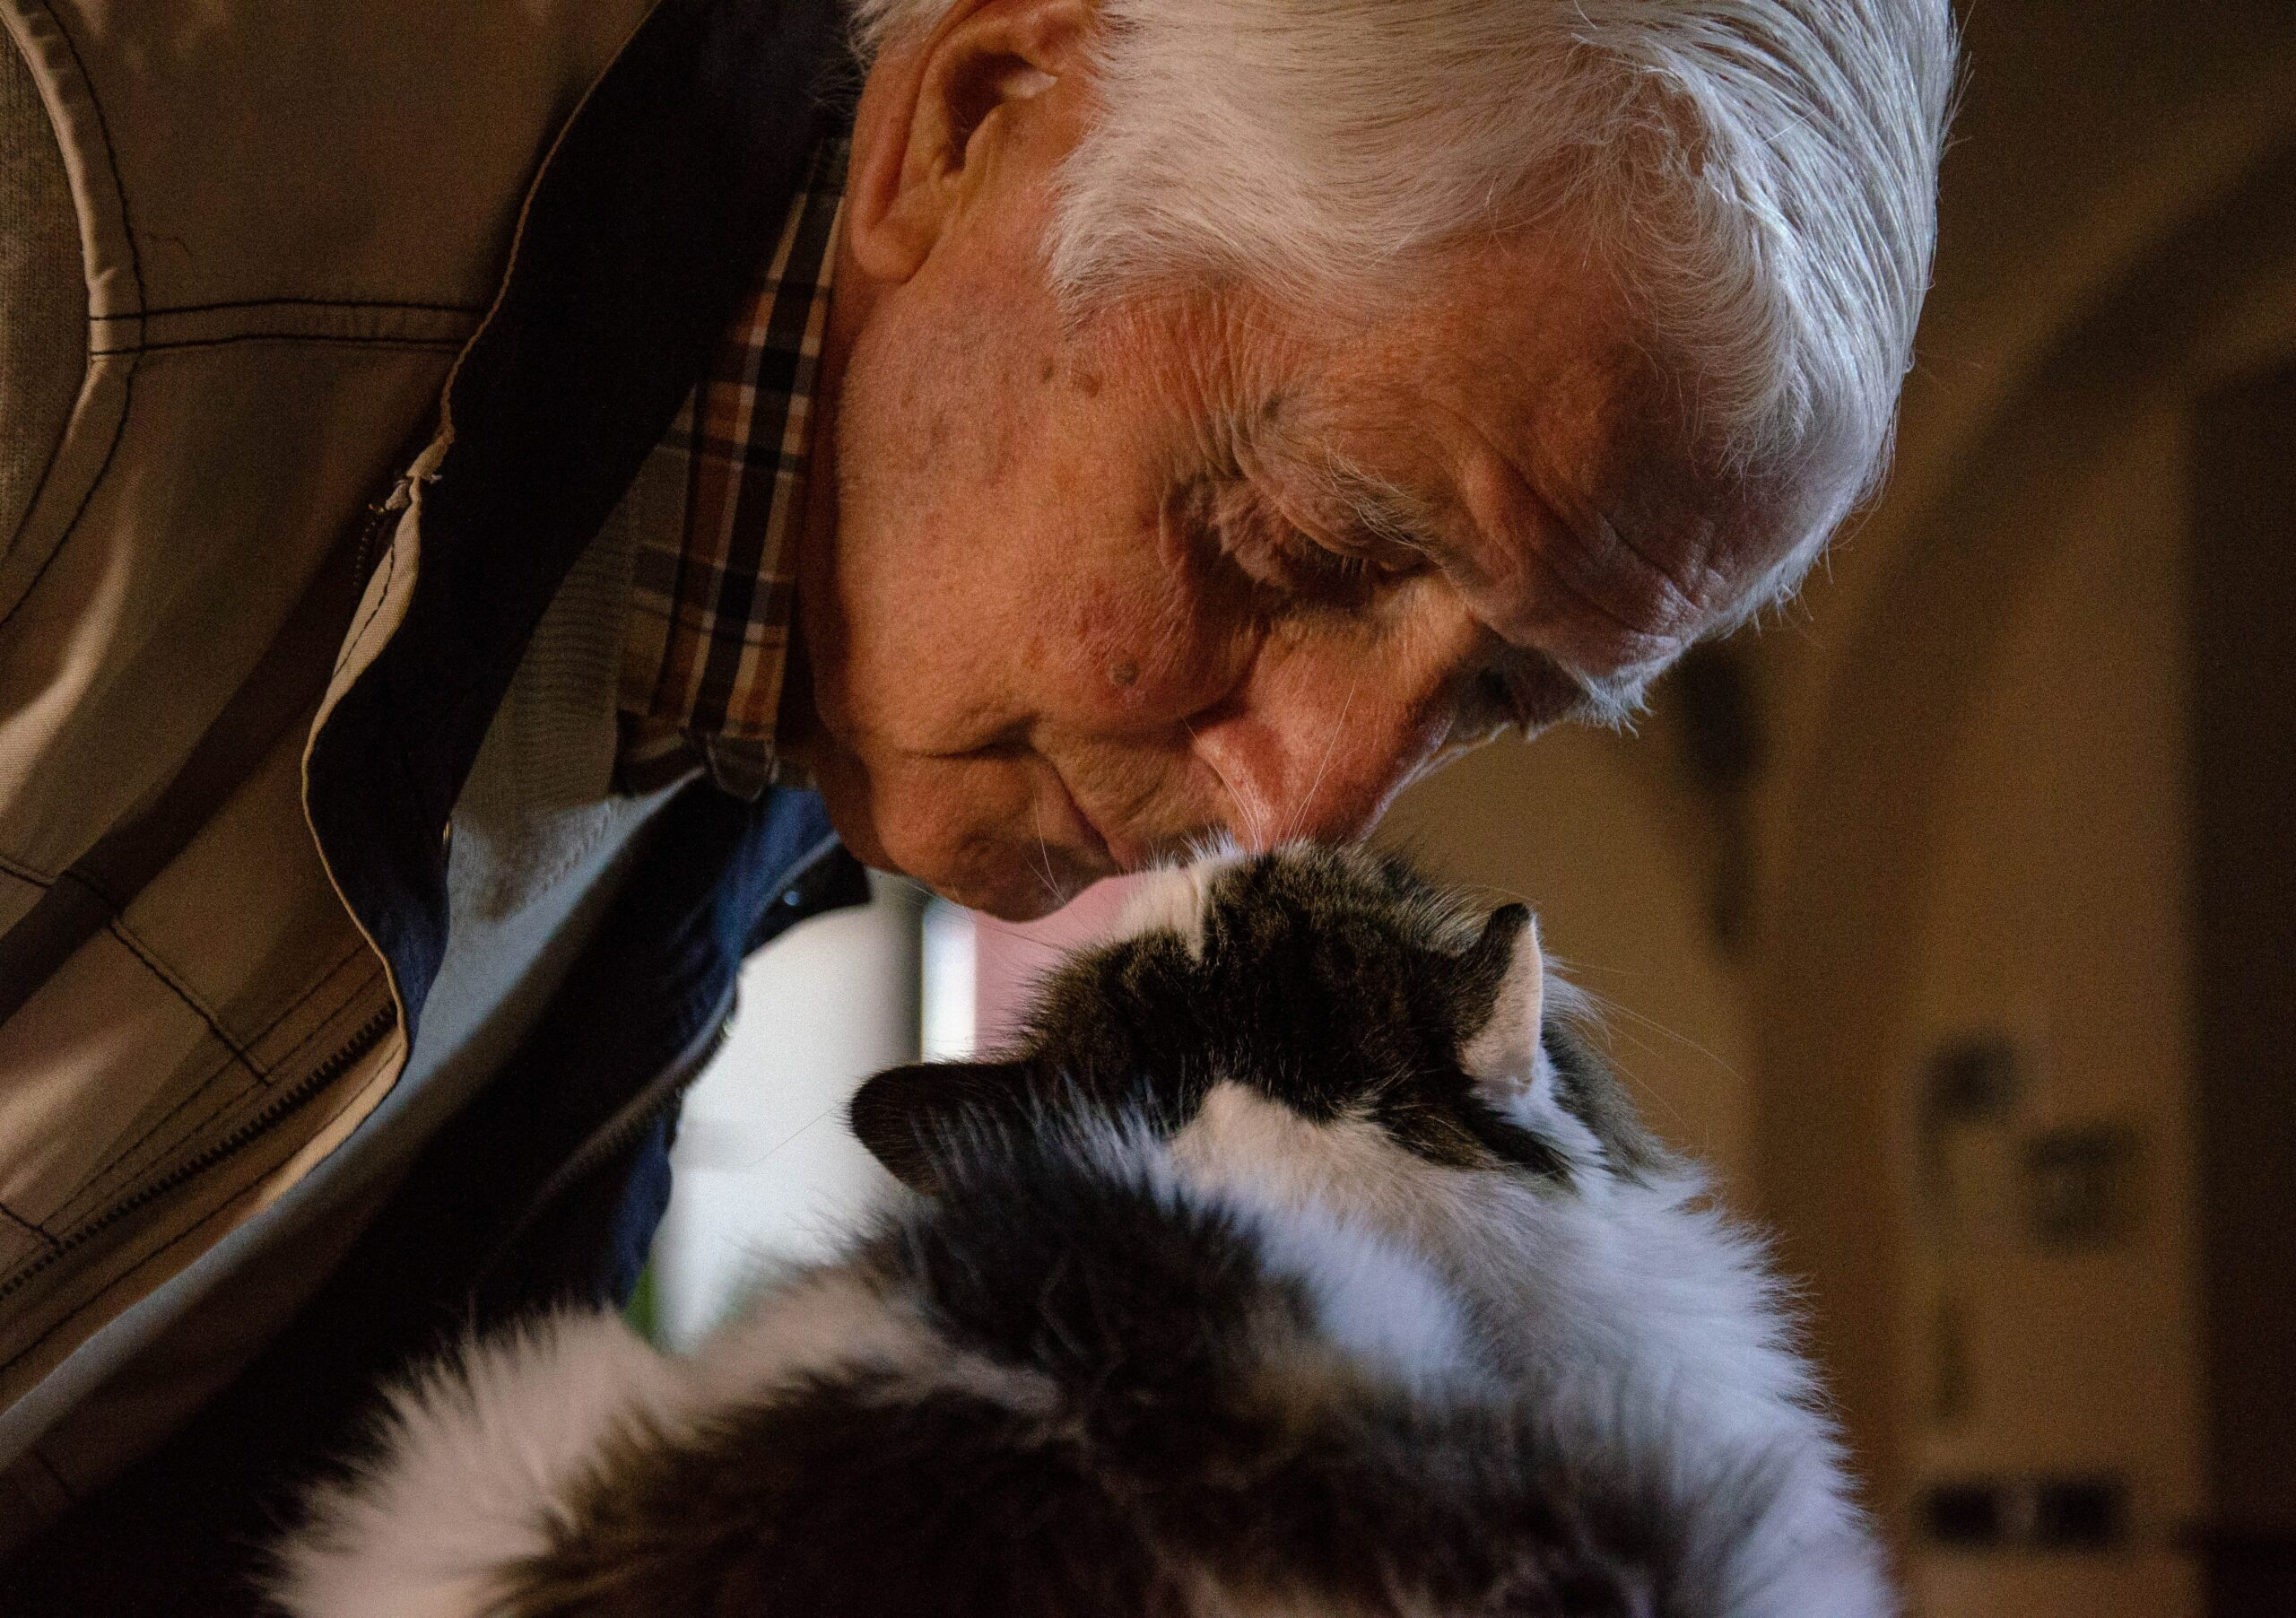 Benefits of catsBenefits of Cats for Old People